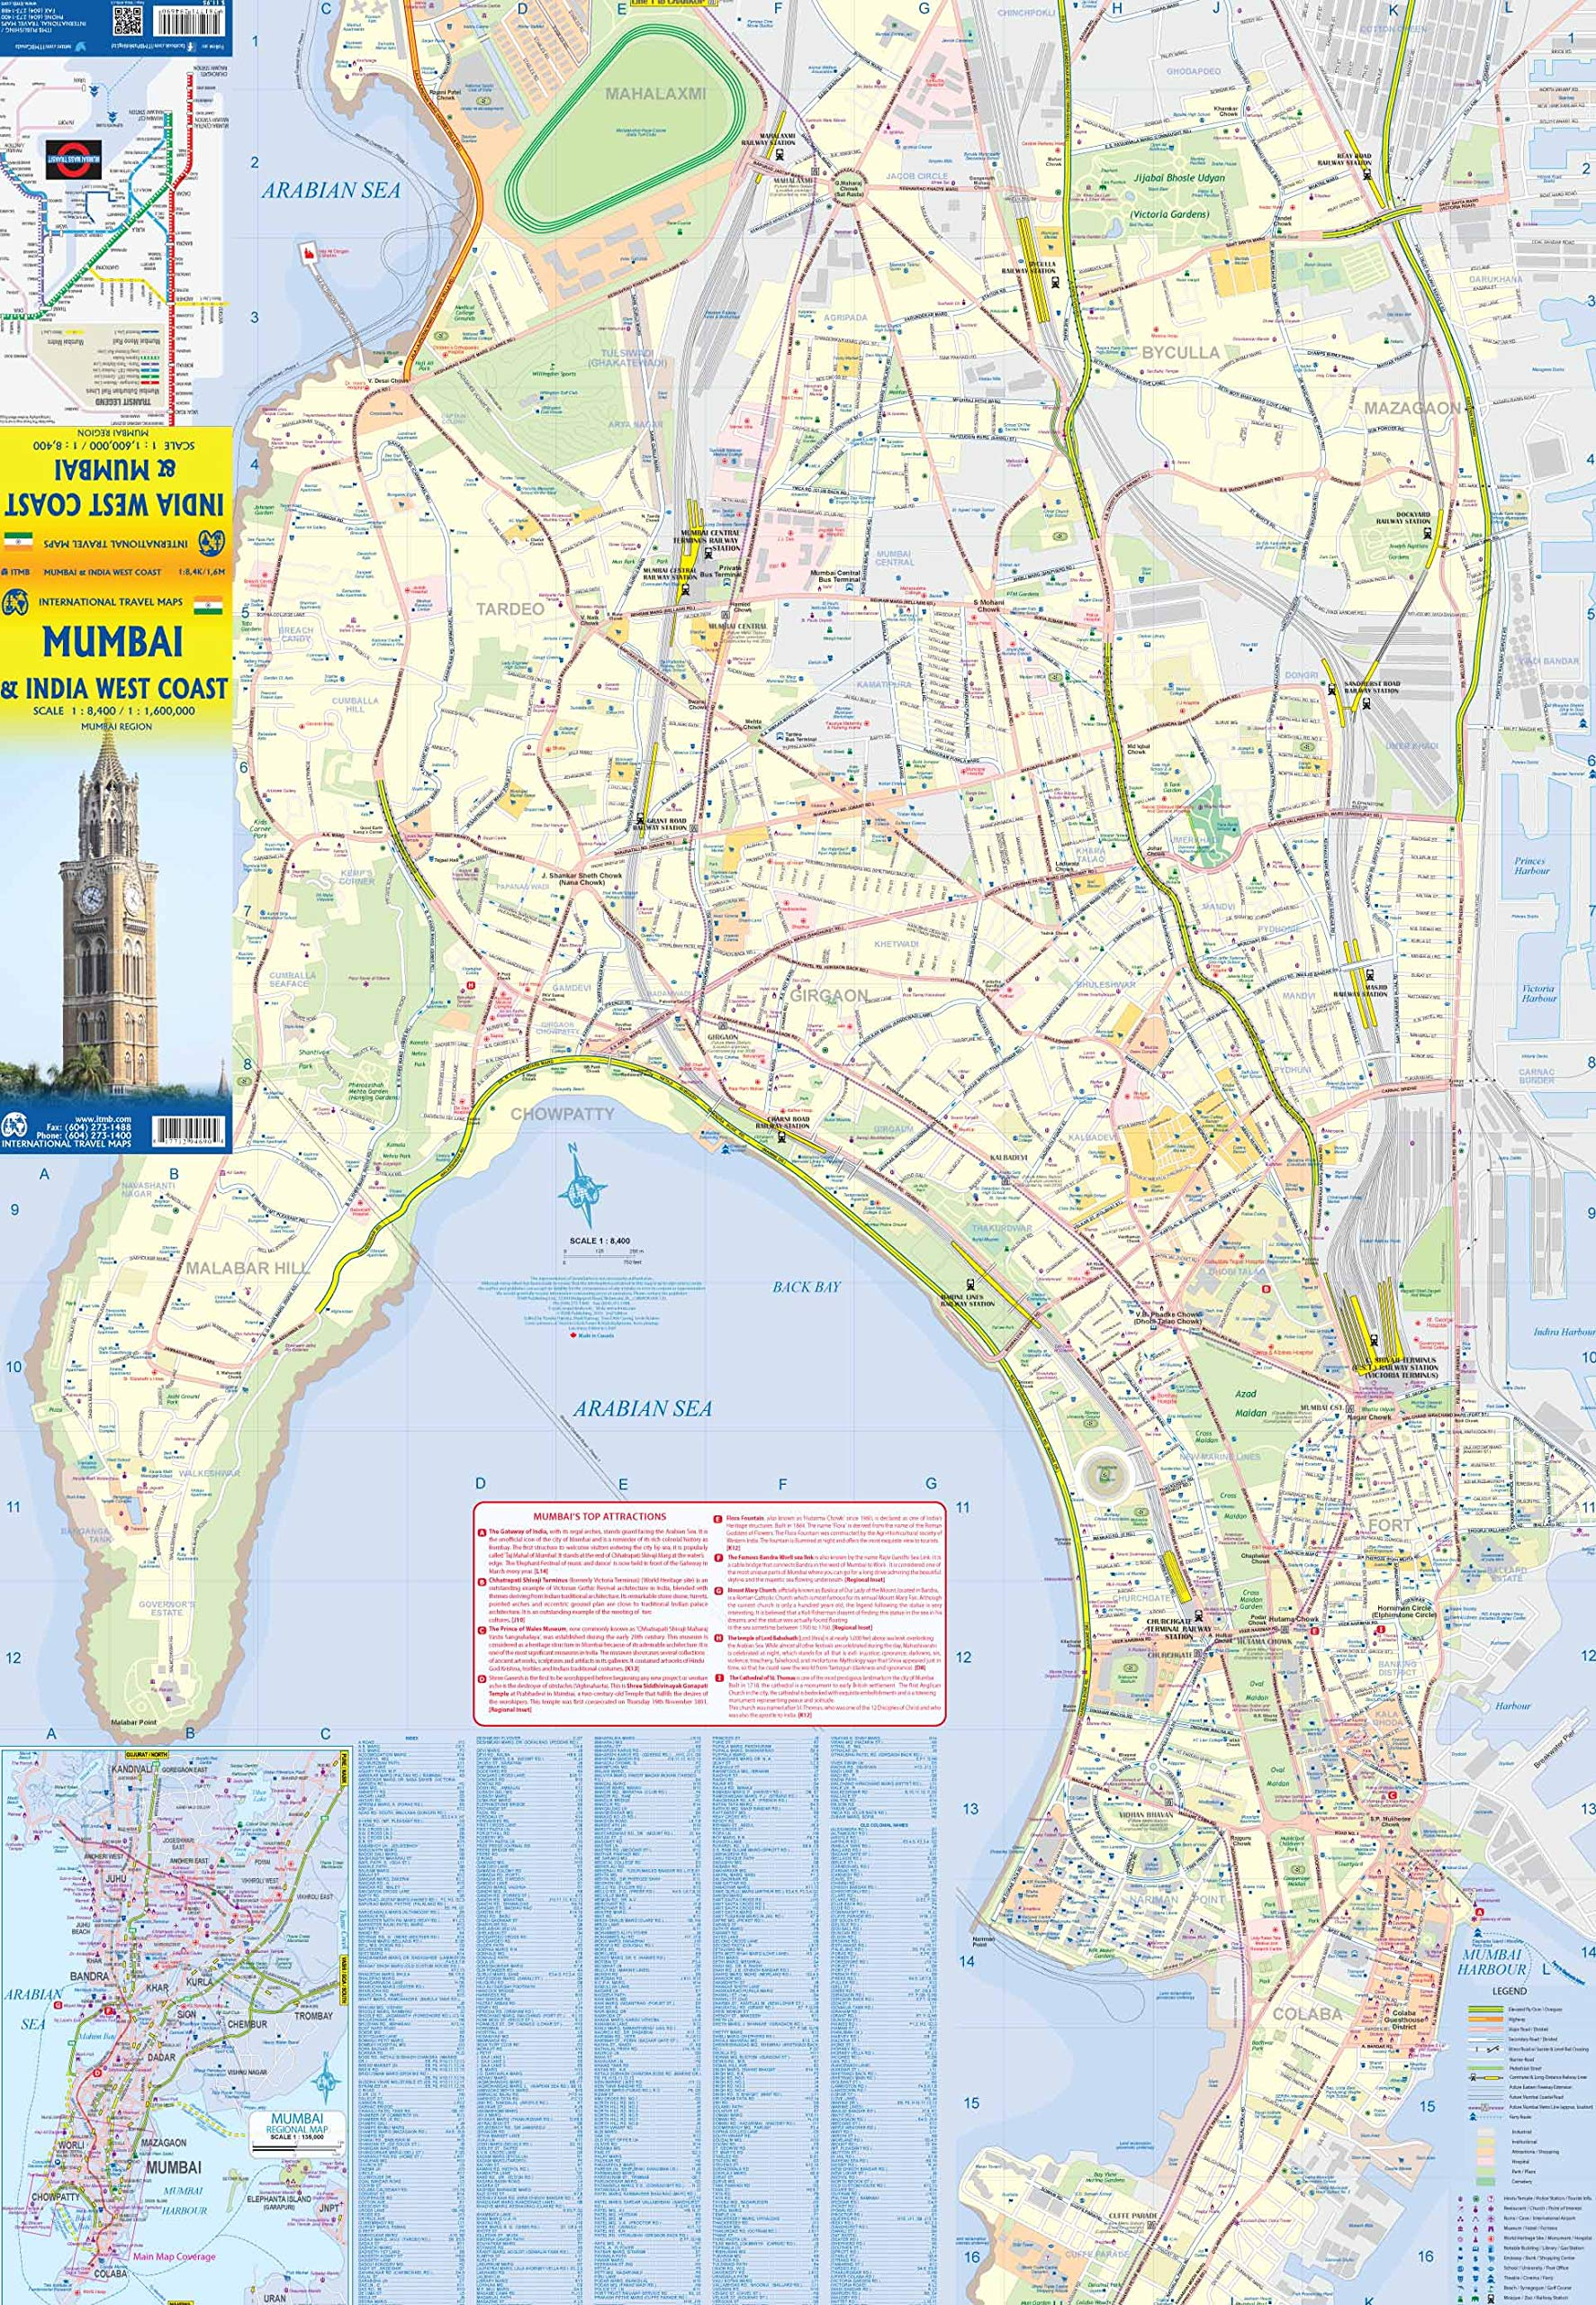 Mumbai &  India West Coast ITM Travel Map 2e